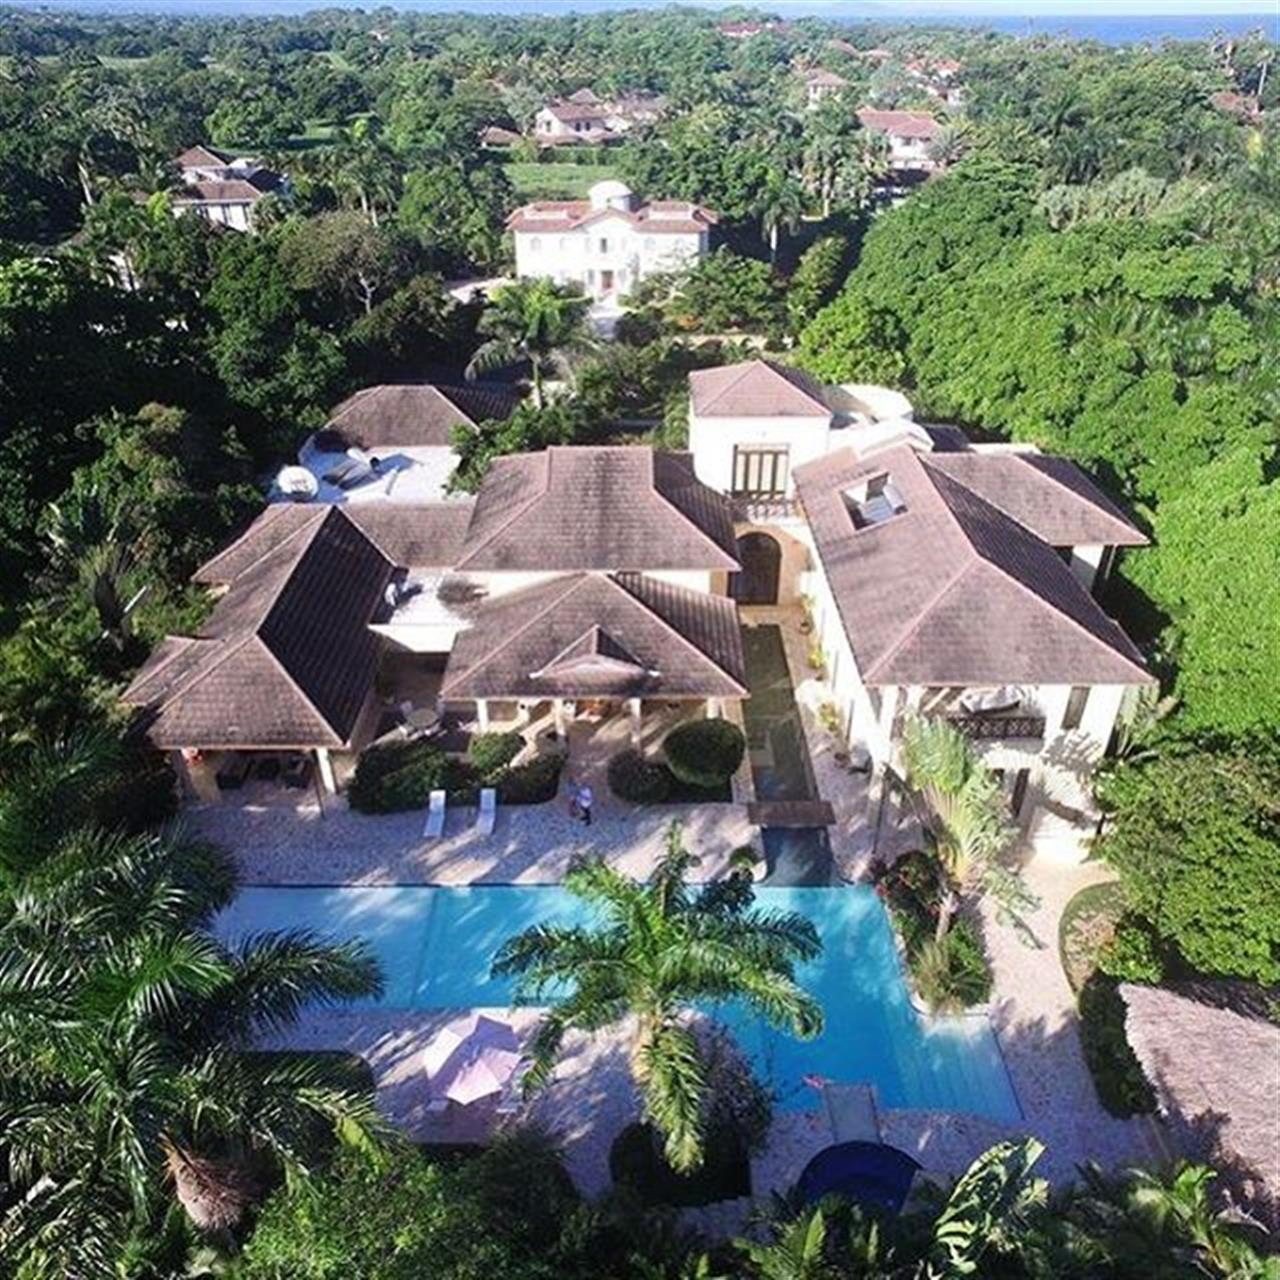 I just going through my photos. I love this house. Great architect! #leadingrelocal #luxuryhome #dominicanrepublicrealestate ##greatarchitecture #architect #dominicanrepublic #cabarete #beachnearhome